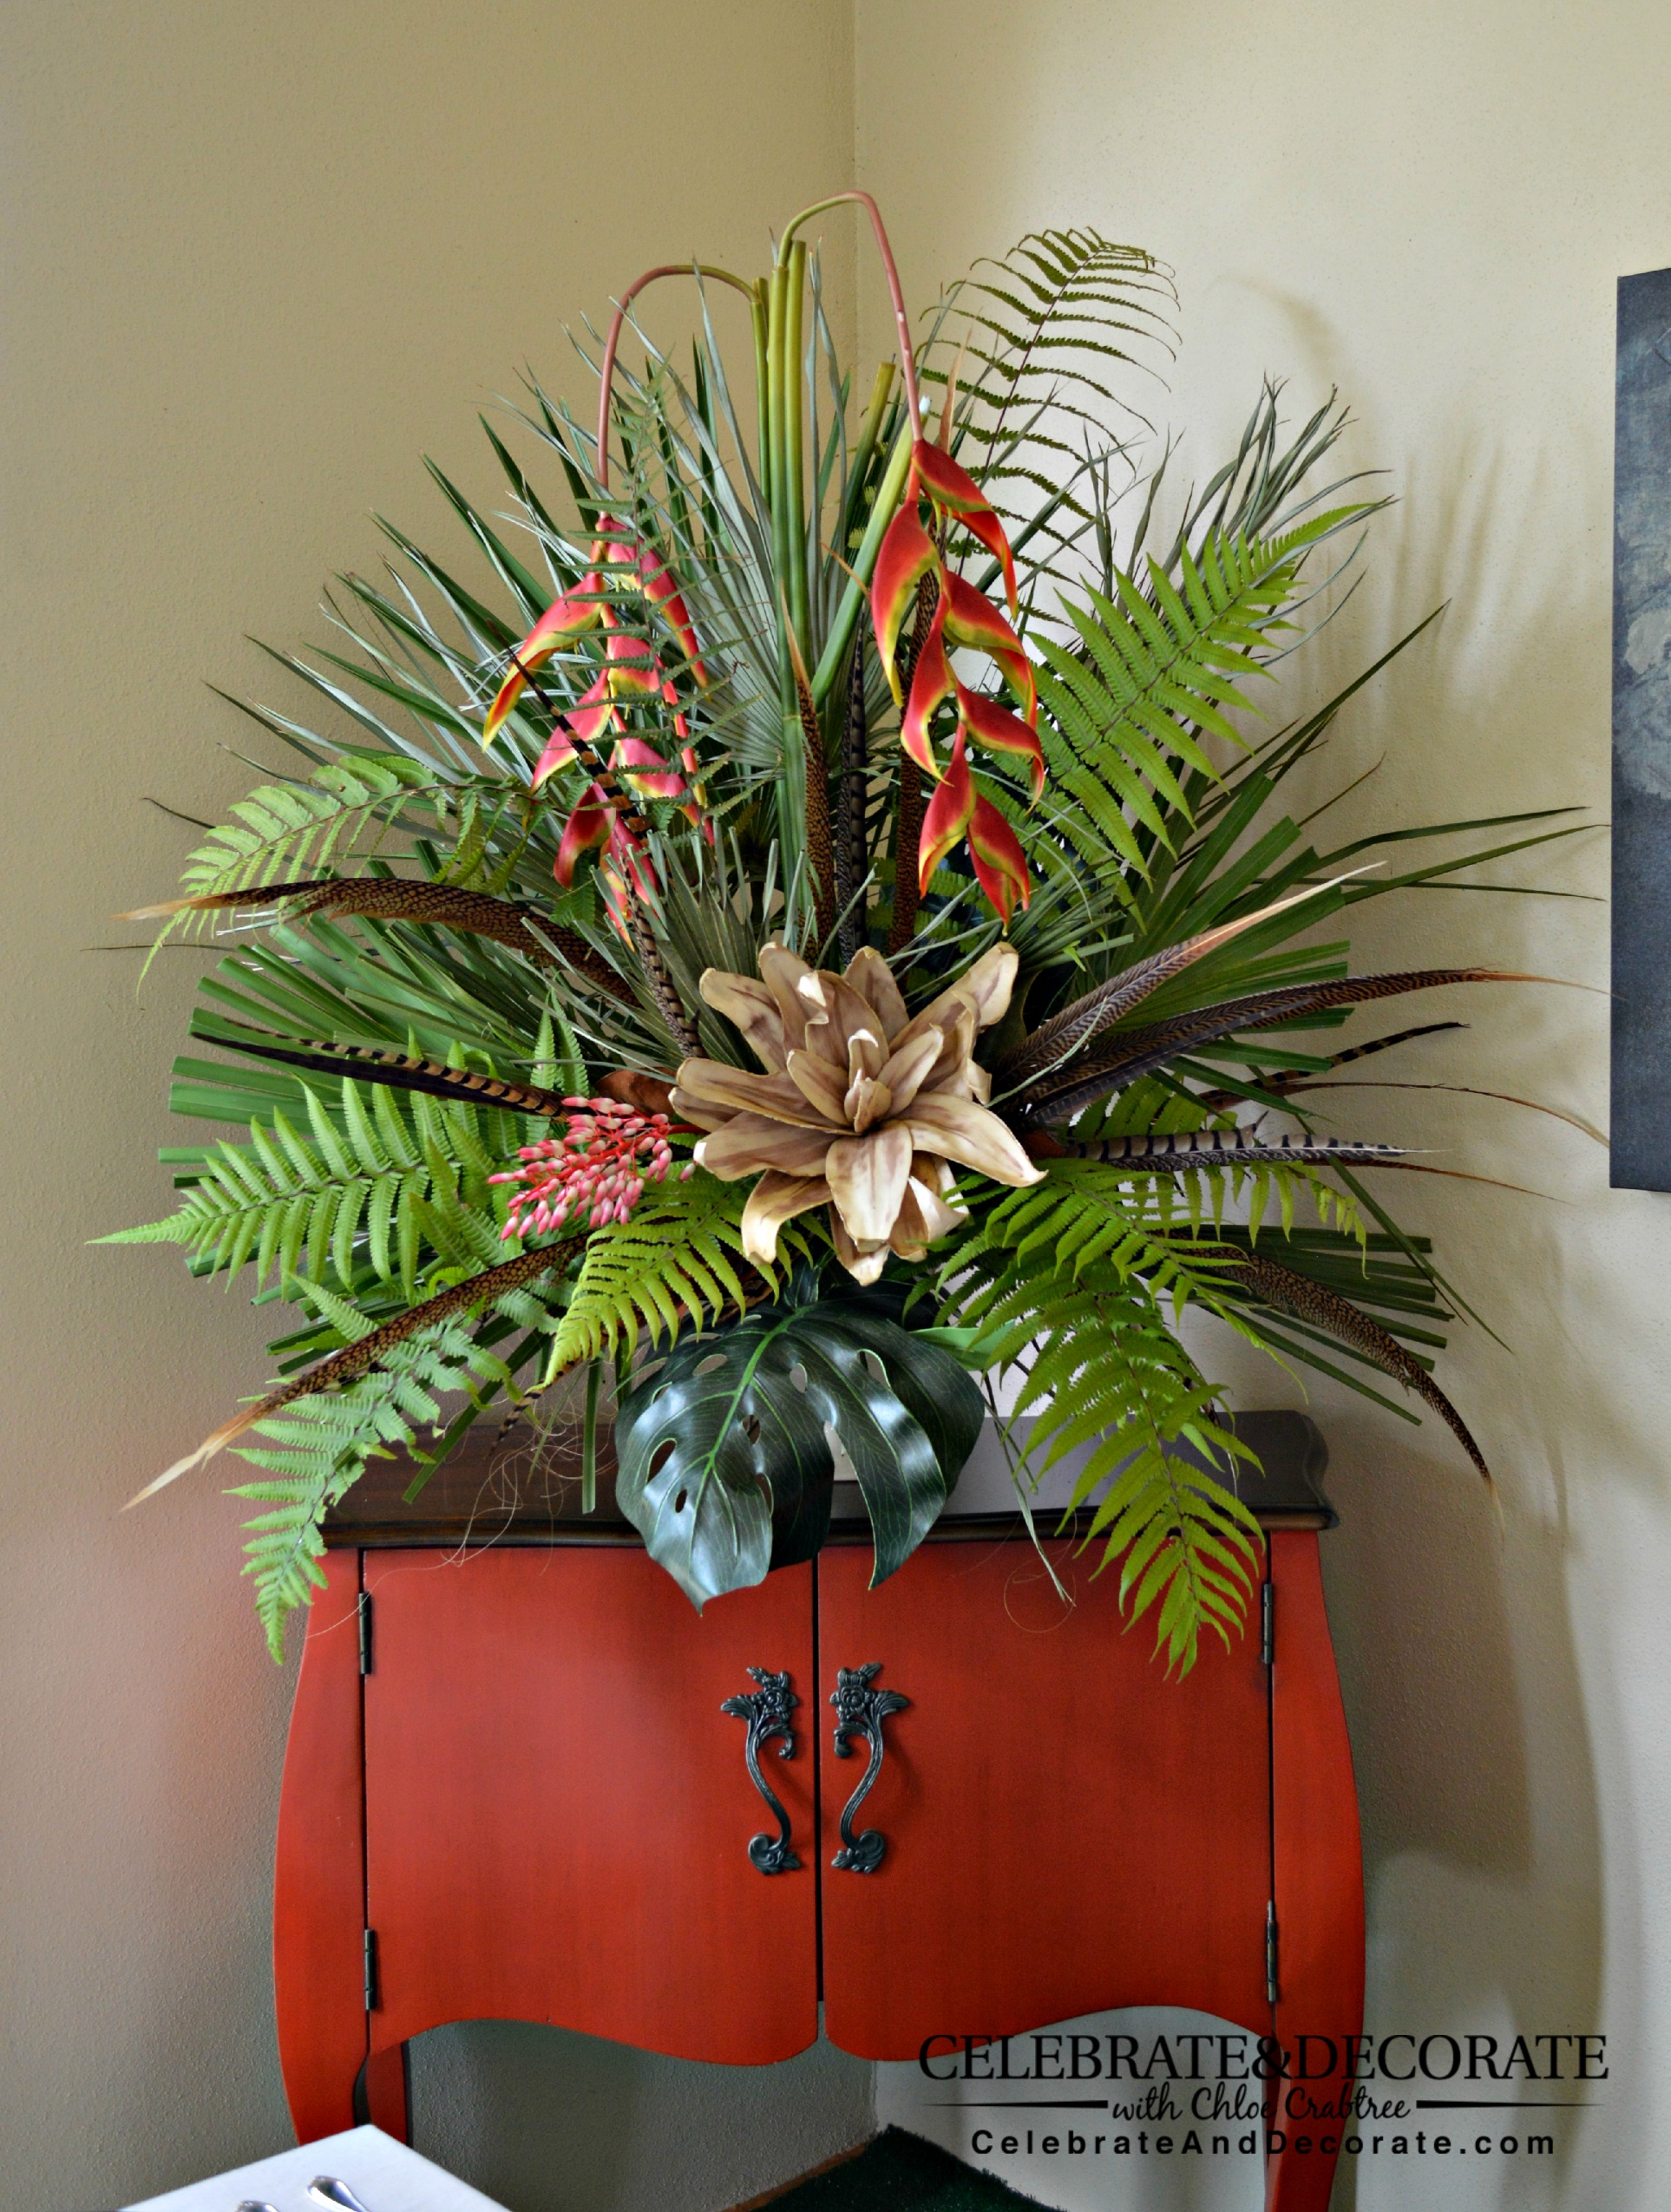 Floral Decor: Safari Party Or Jungle Party Perfect For An Outdoor Summer